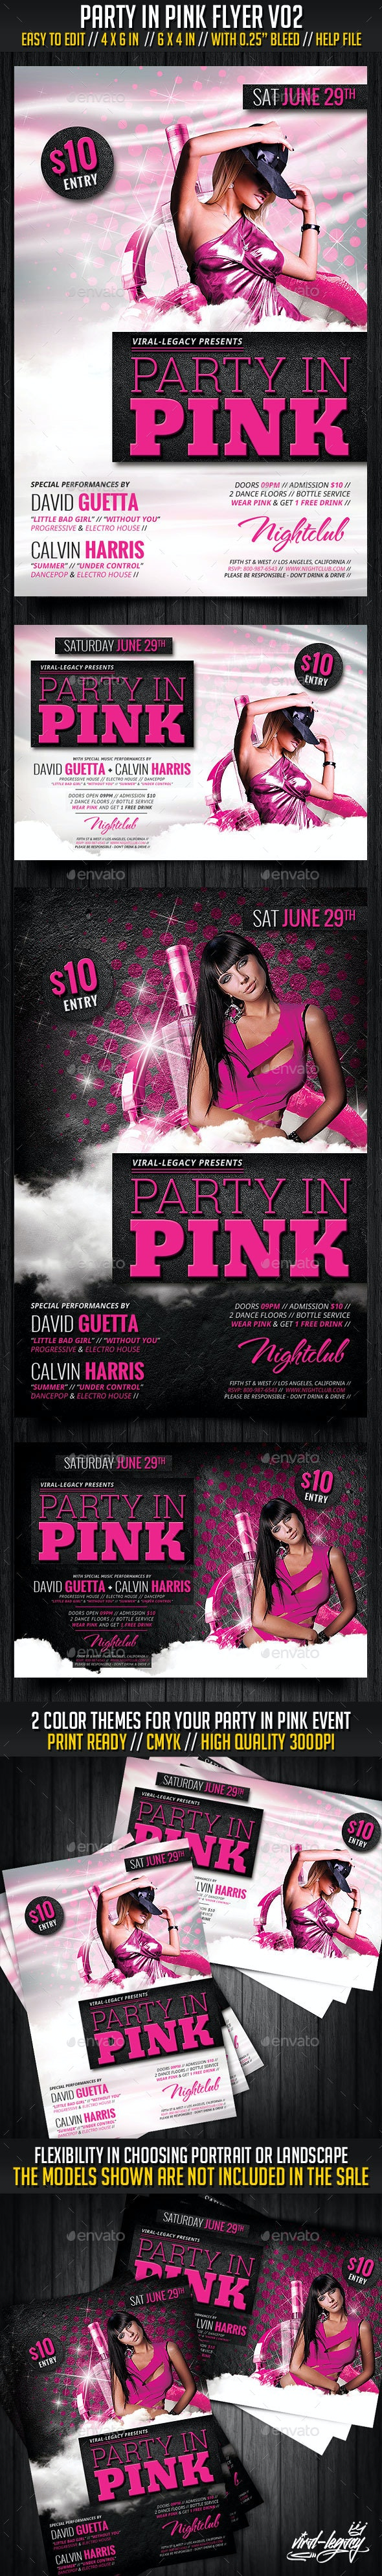 Party In Pink Flyer V01 - Clubs & Parties Events